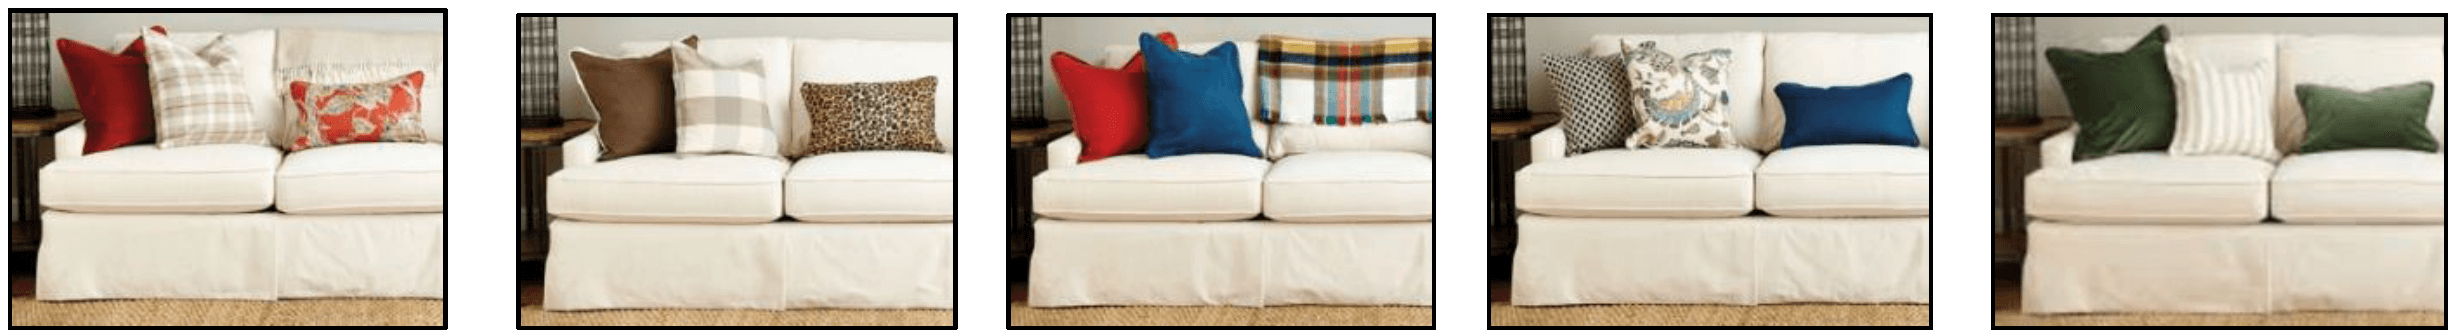 Replace cushions for spring to give a brand new look